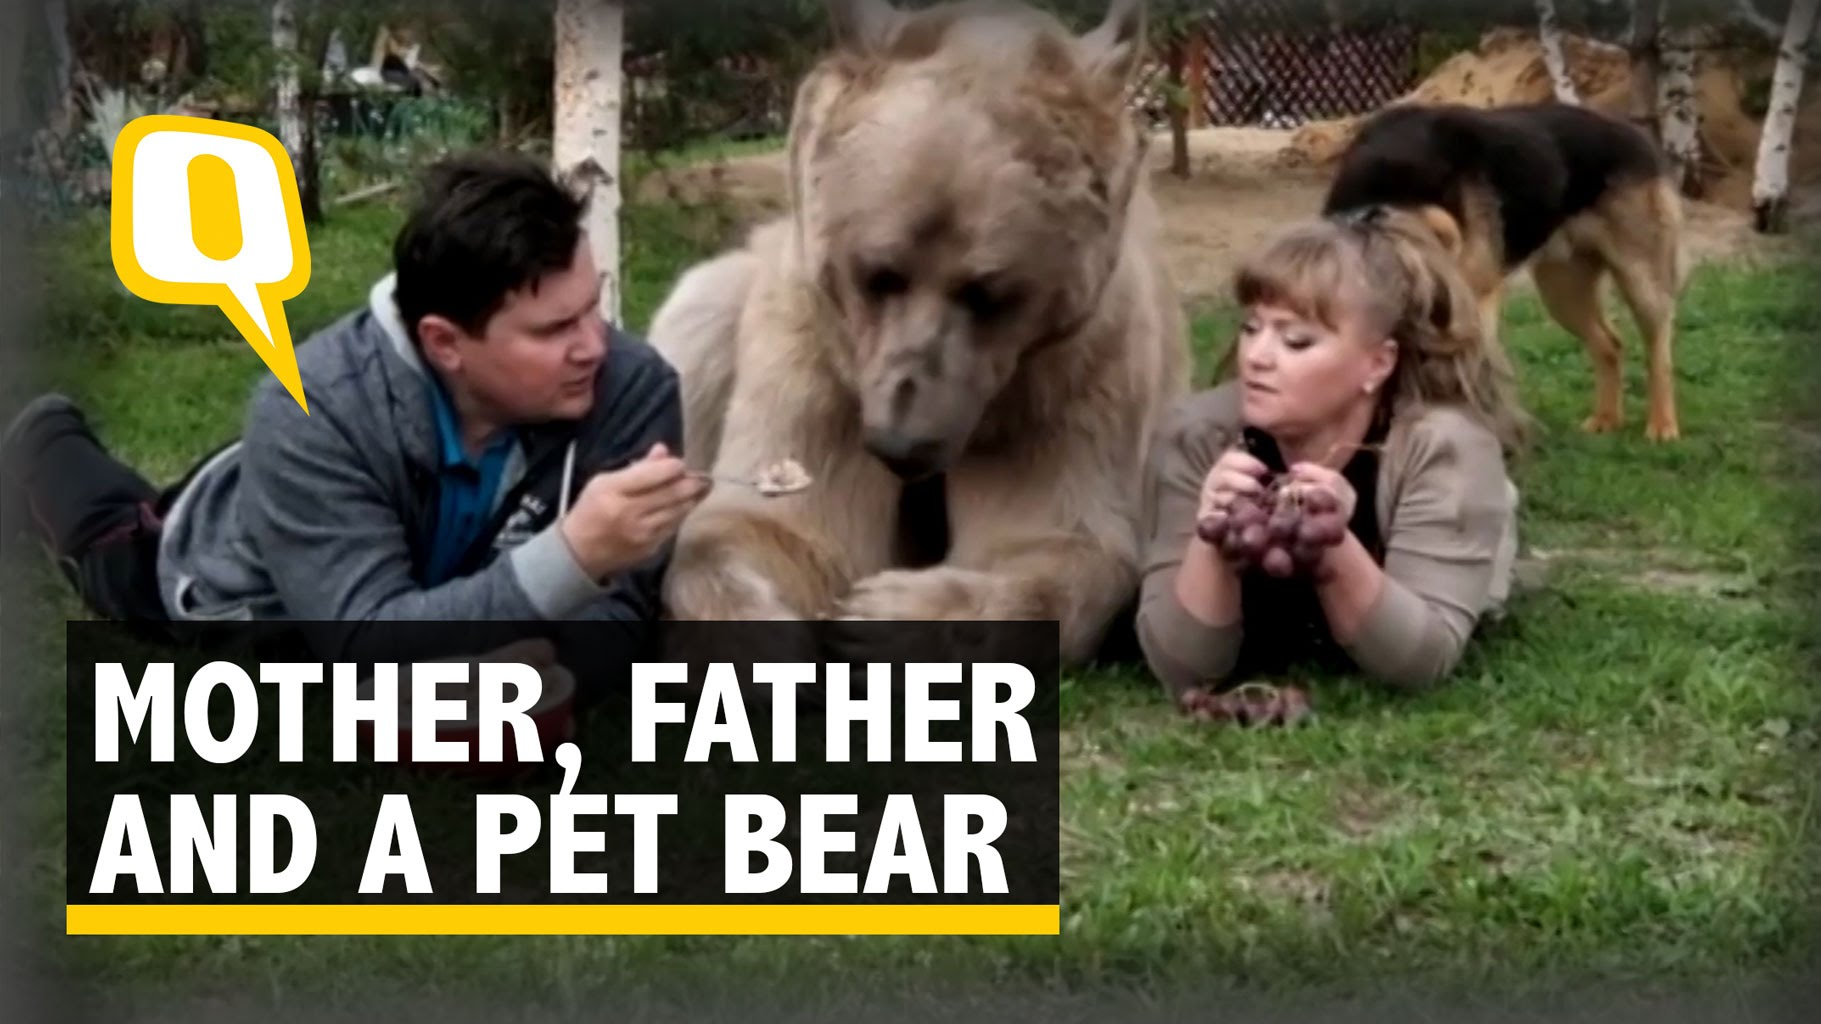 This Russian couple adopted a bear!